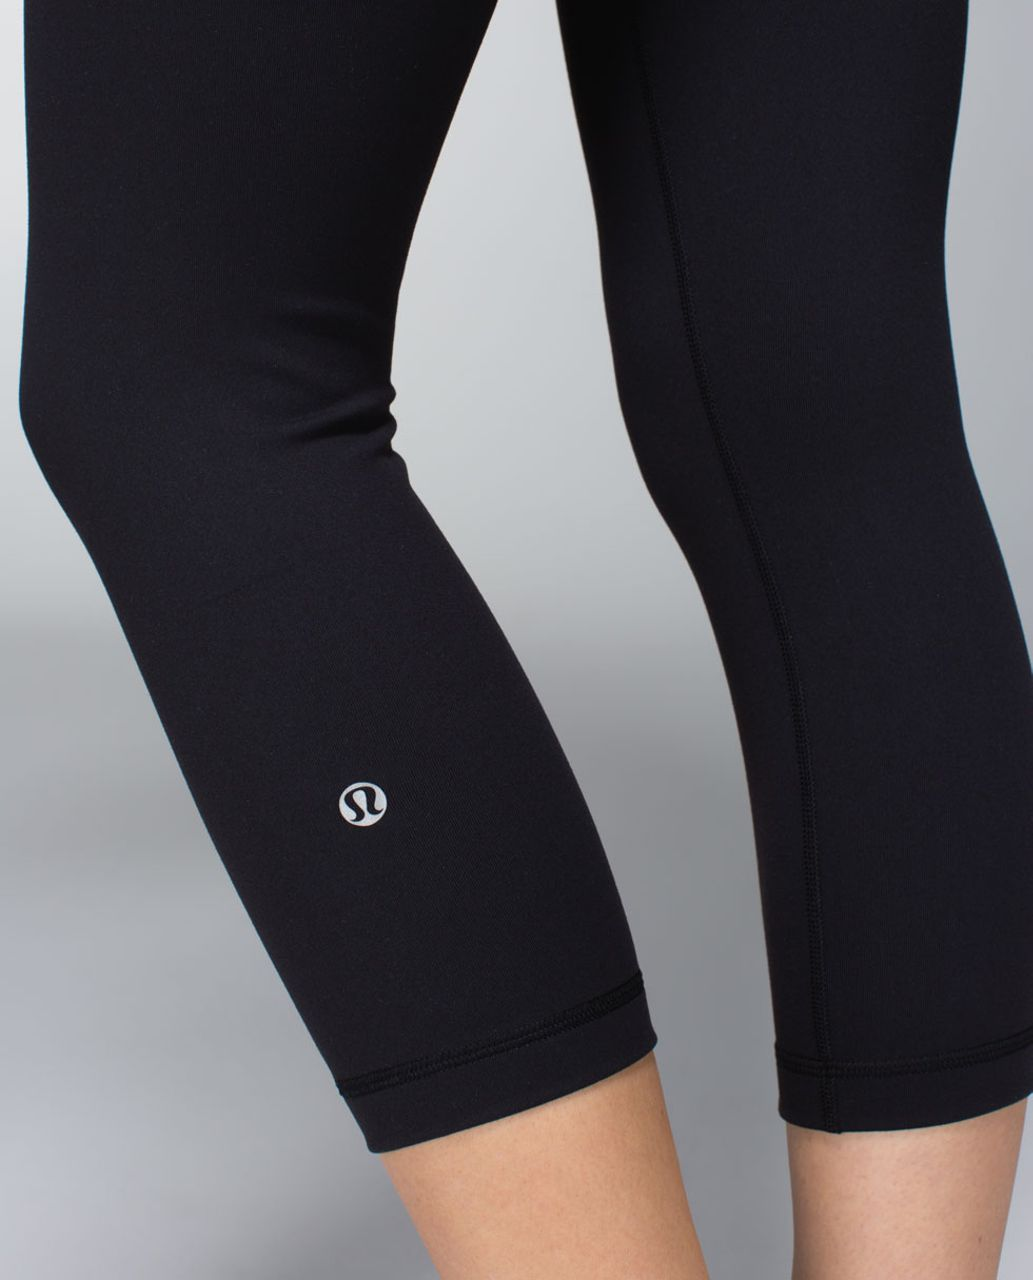 Lululemon Wunder Under Crop *Full-On Luon - Black / Quilt Spring 14-21